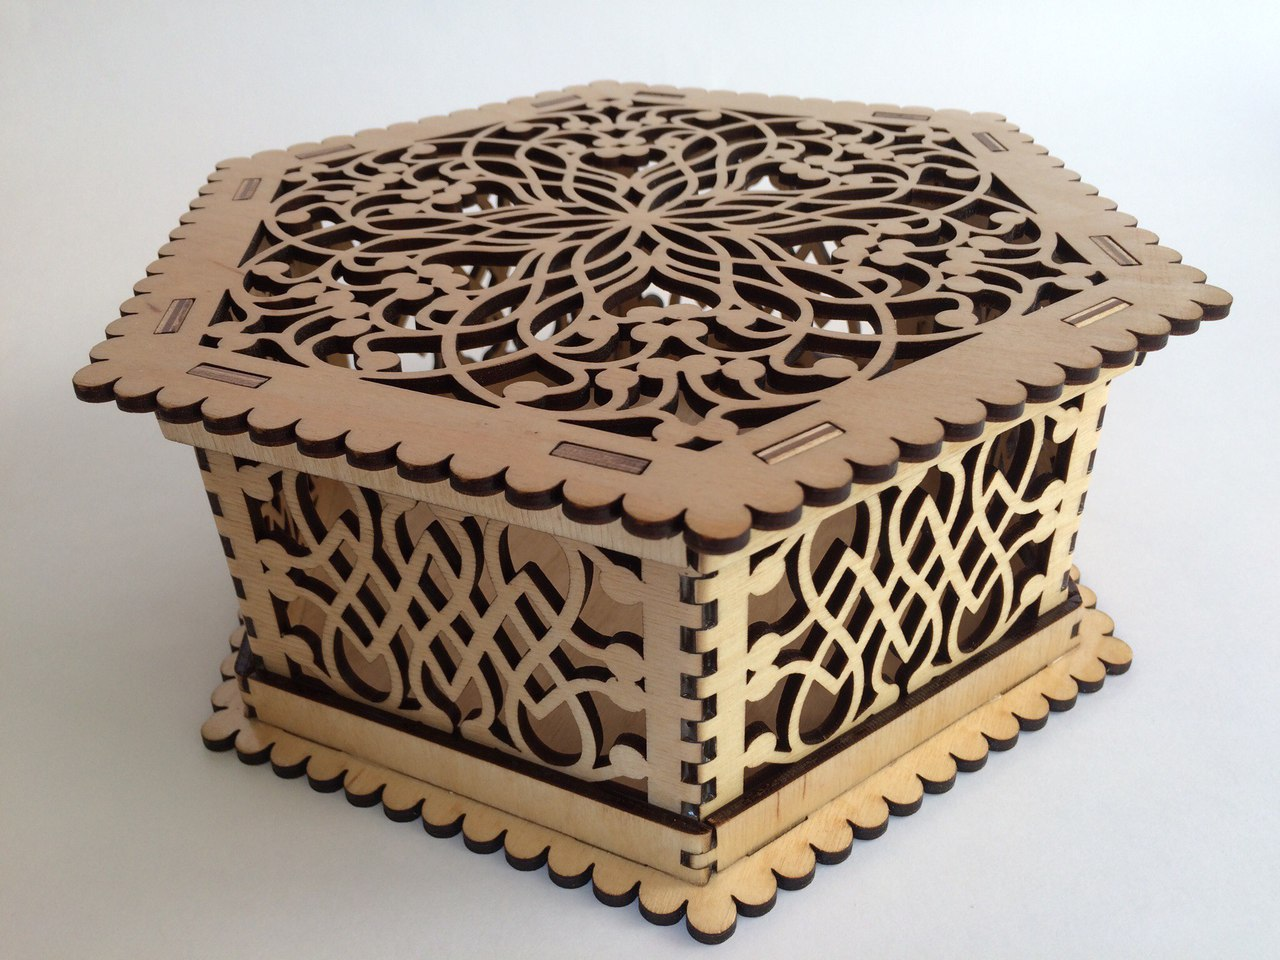 Laser Cut Wooden Jewelry Box Free Vector